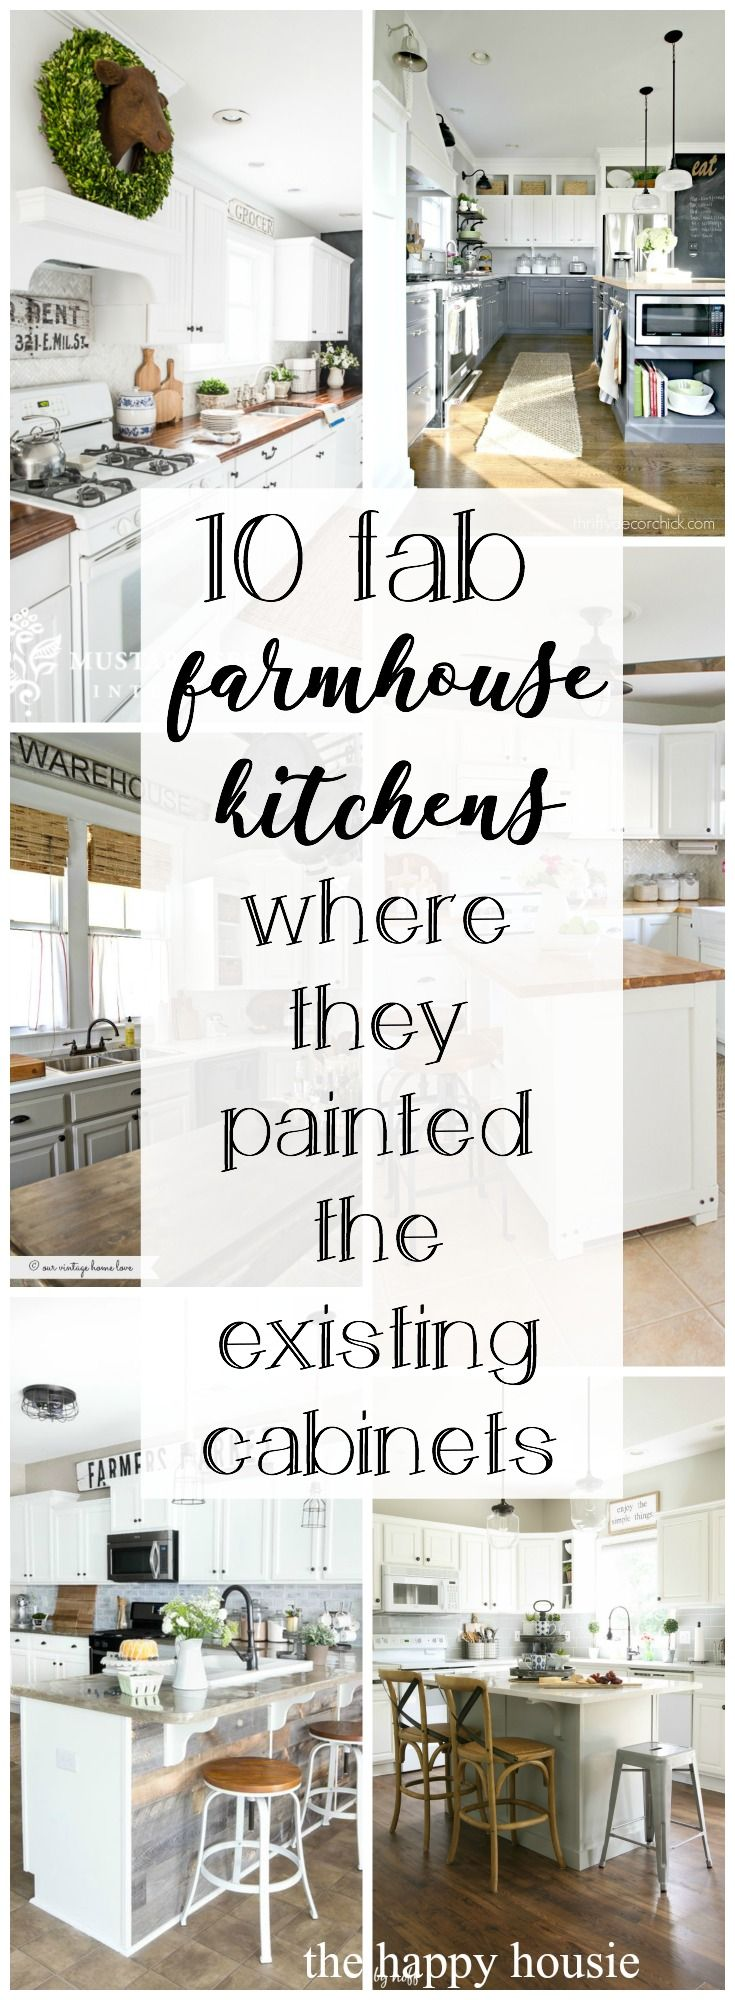 1608 best Kitchens images on Pinterest | Country kitchens, Farmhouse ...